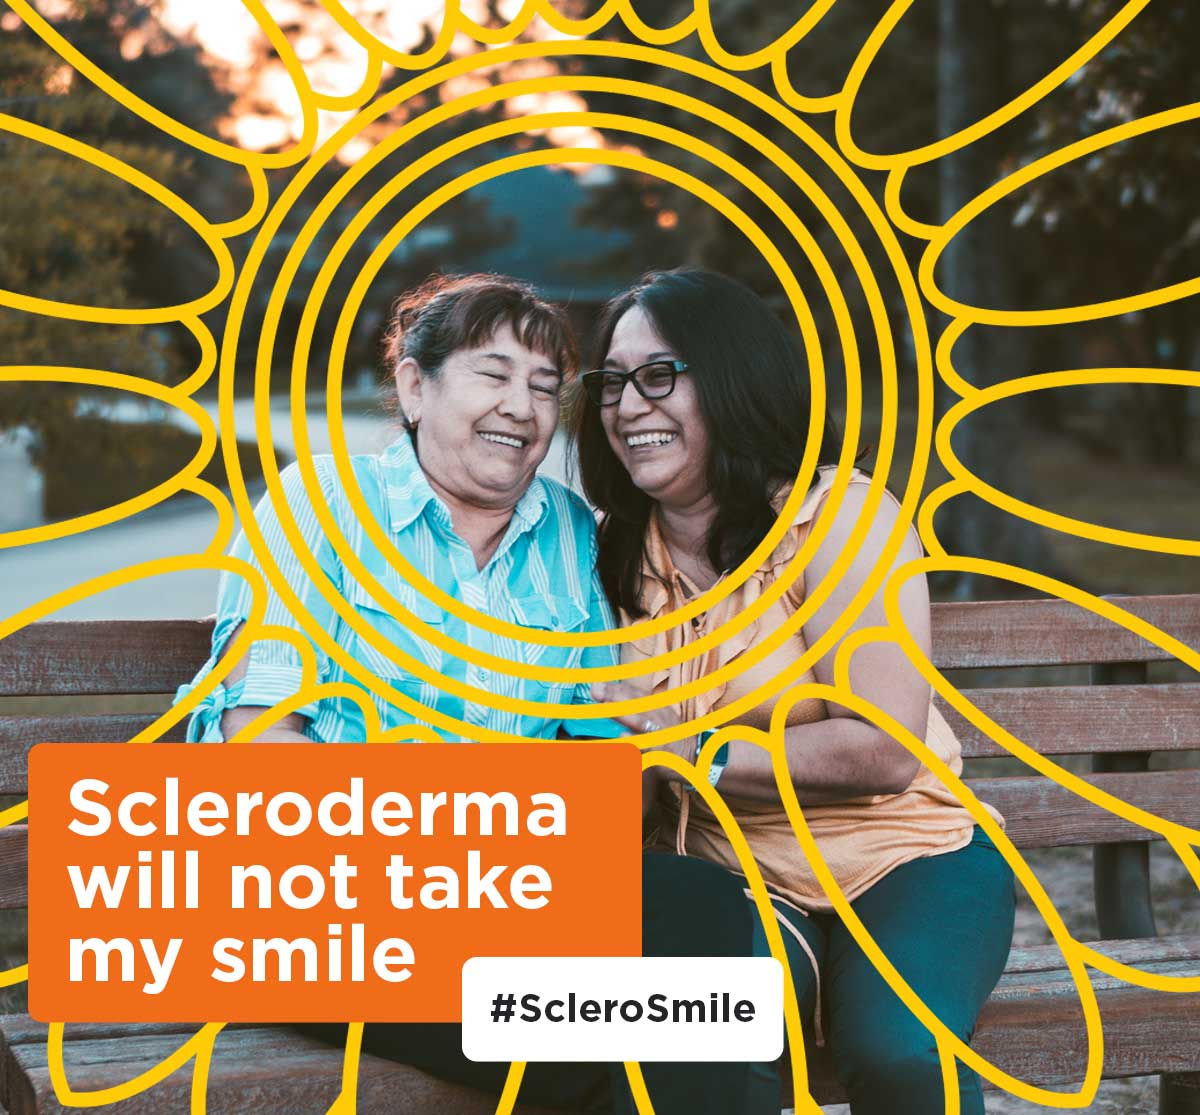 Scleroderma will not take my smile; ladies smiling